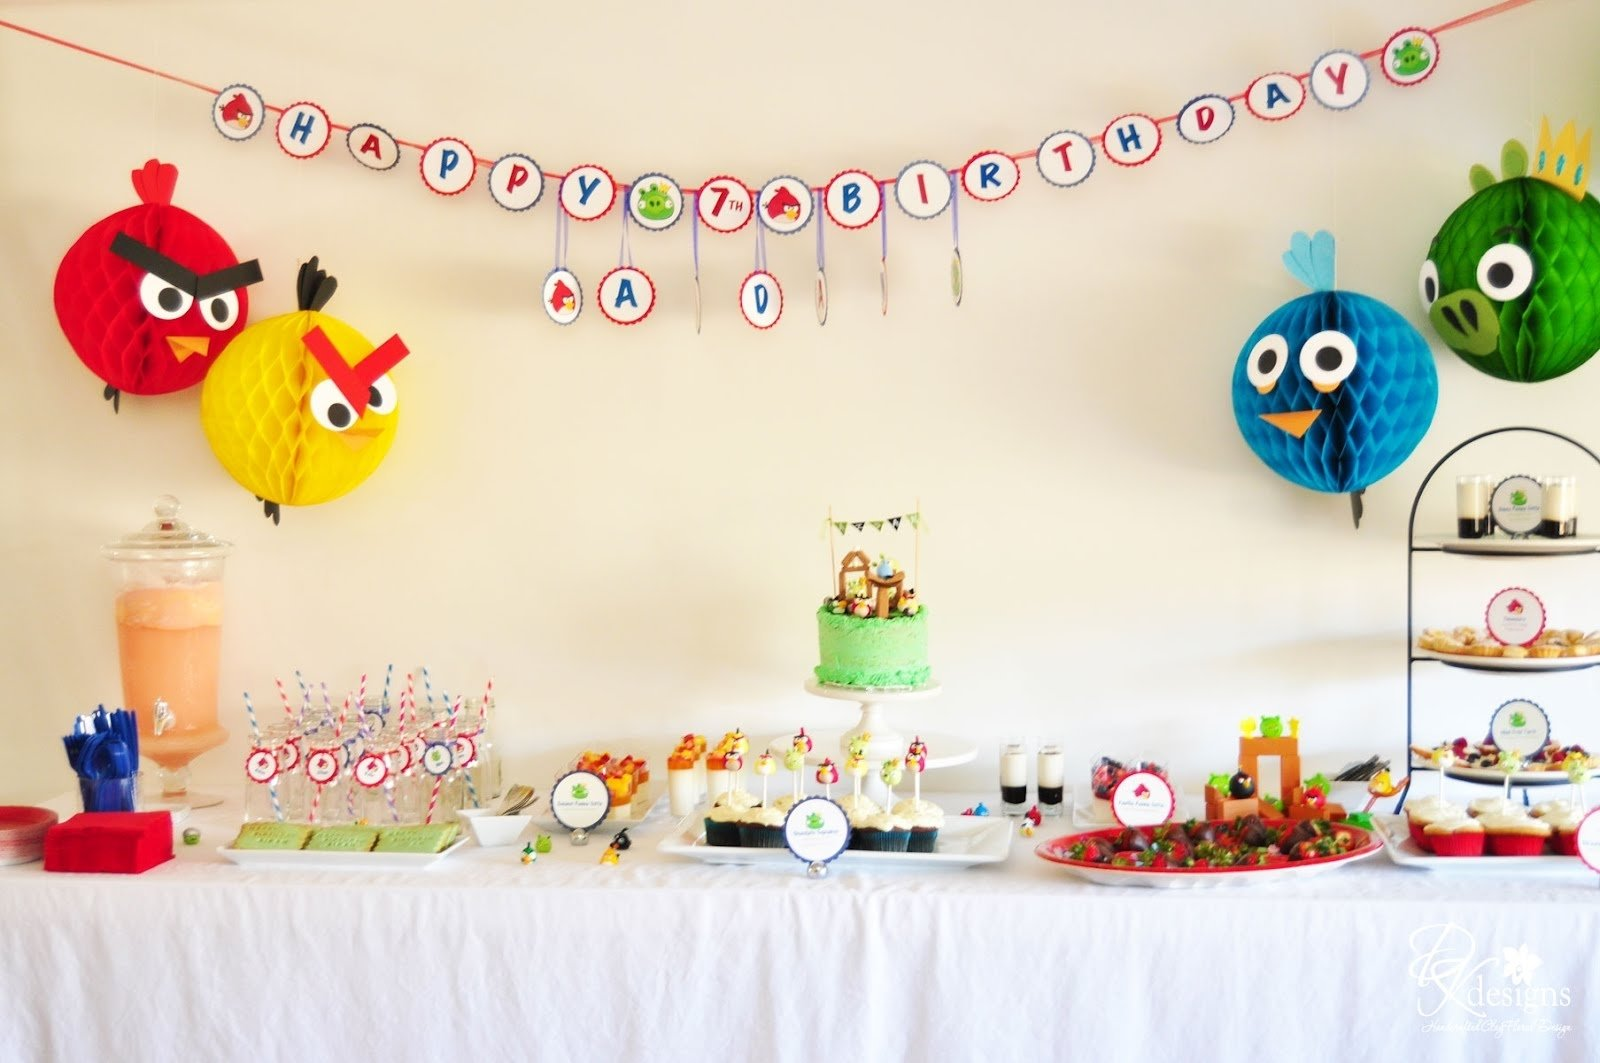 10 Famous Angry Bird Birthday Party Ideas dk designs my sons angry birds themed birthday party photos 2020